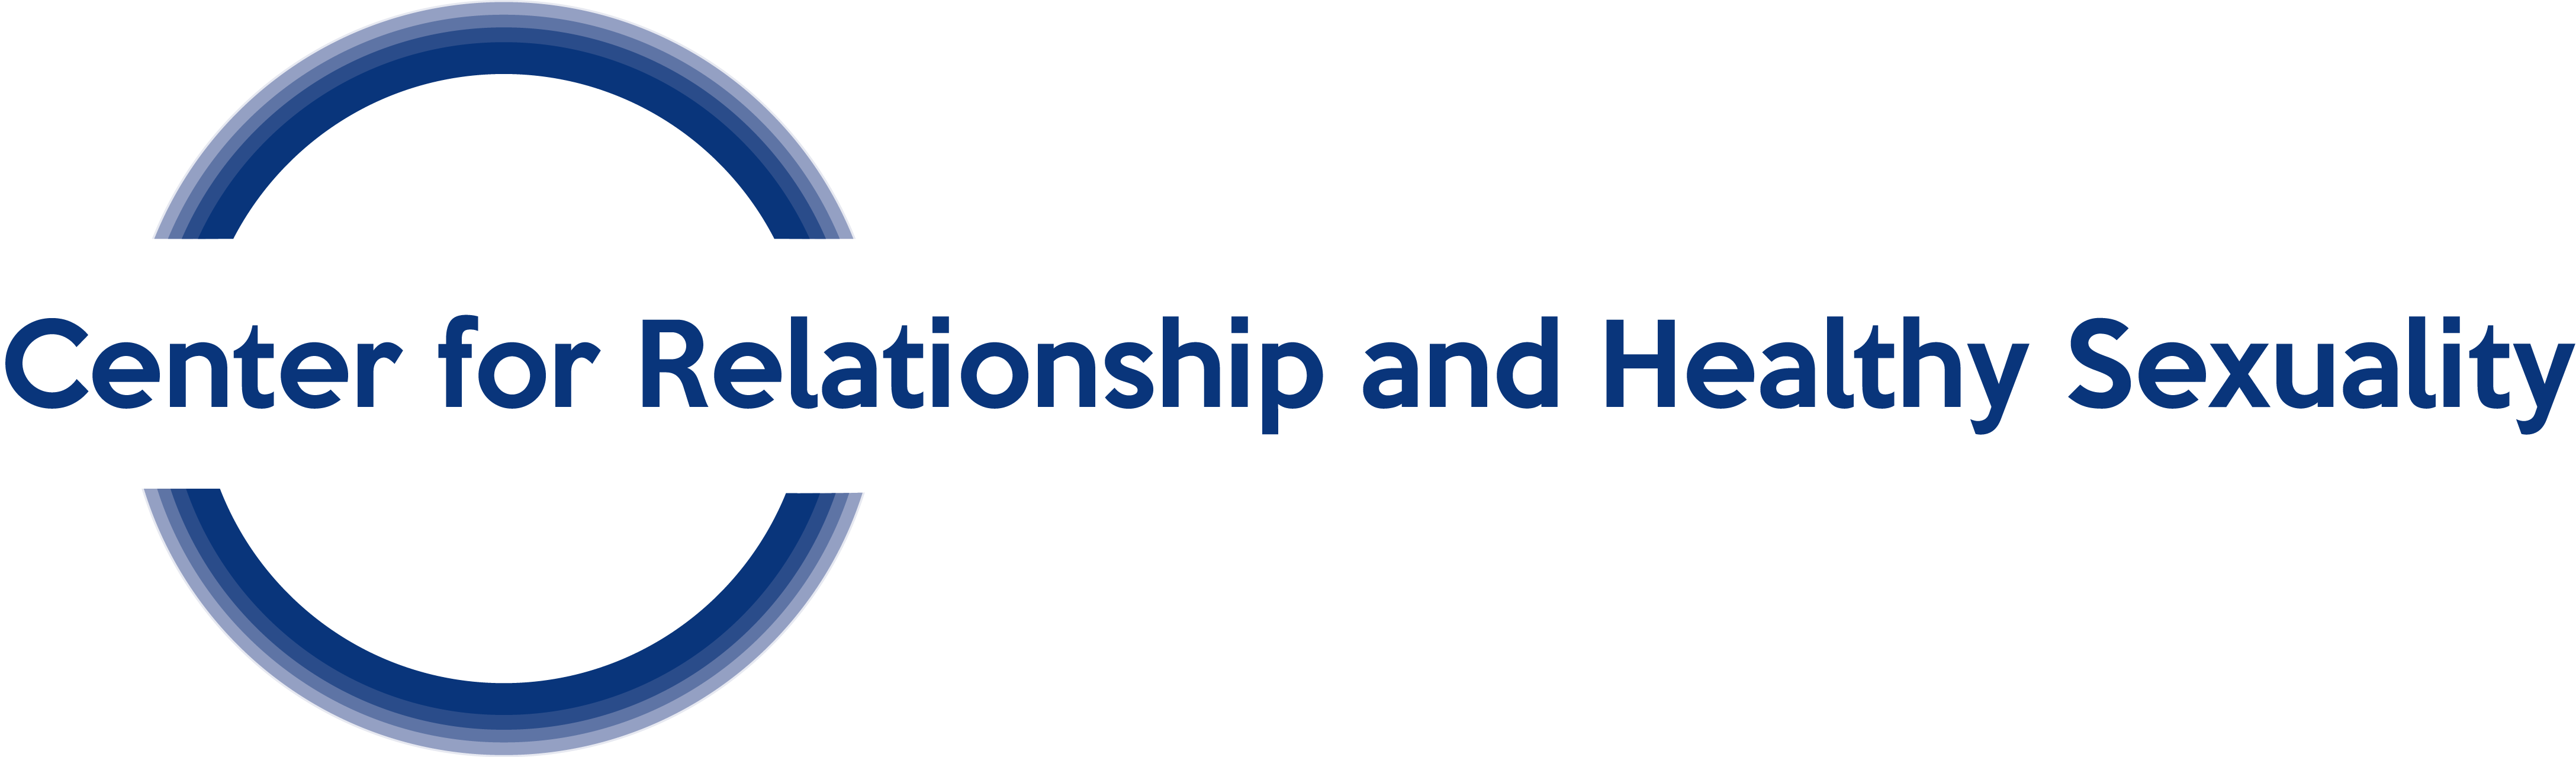 Center for Relationship and Healthy Sexuality